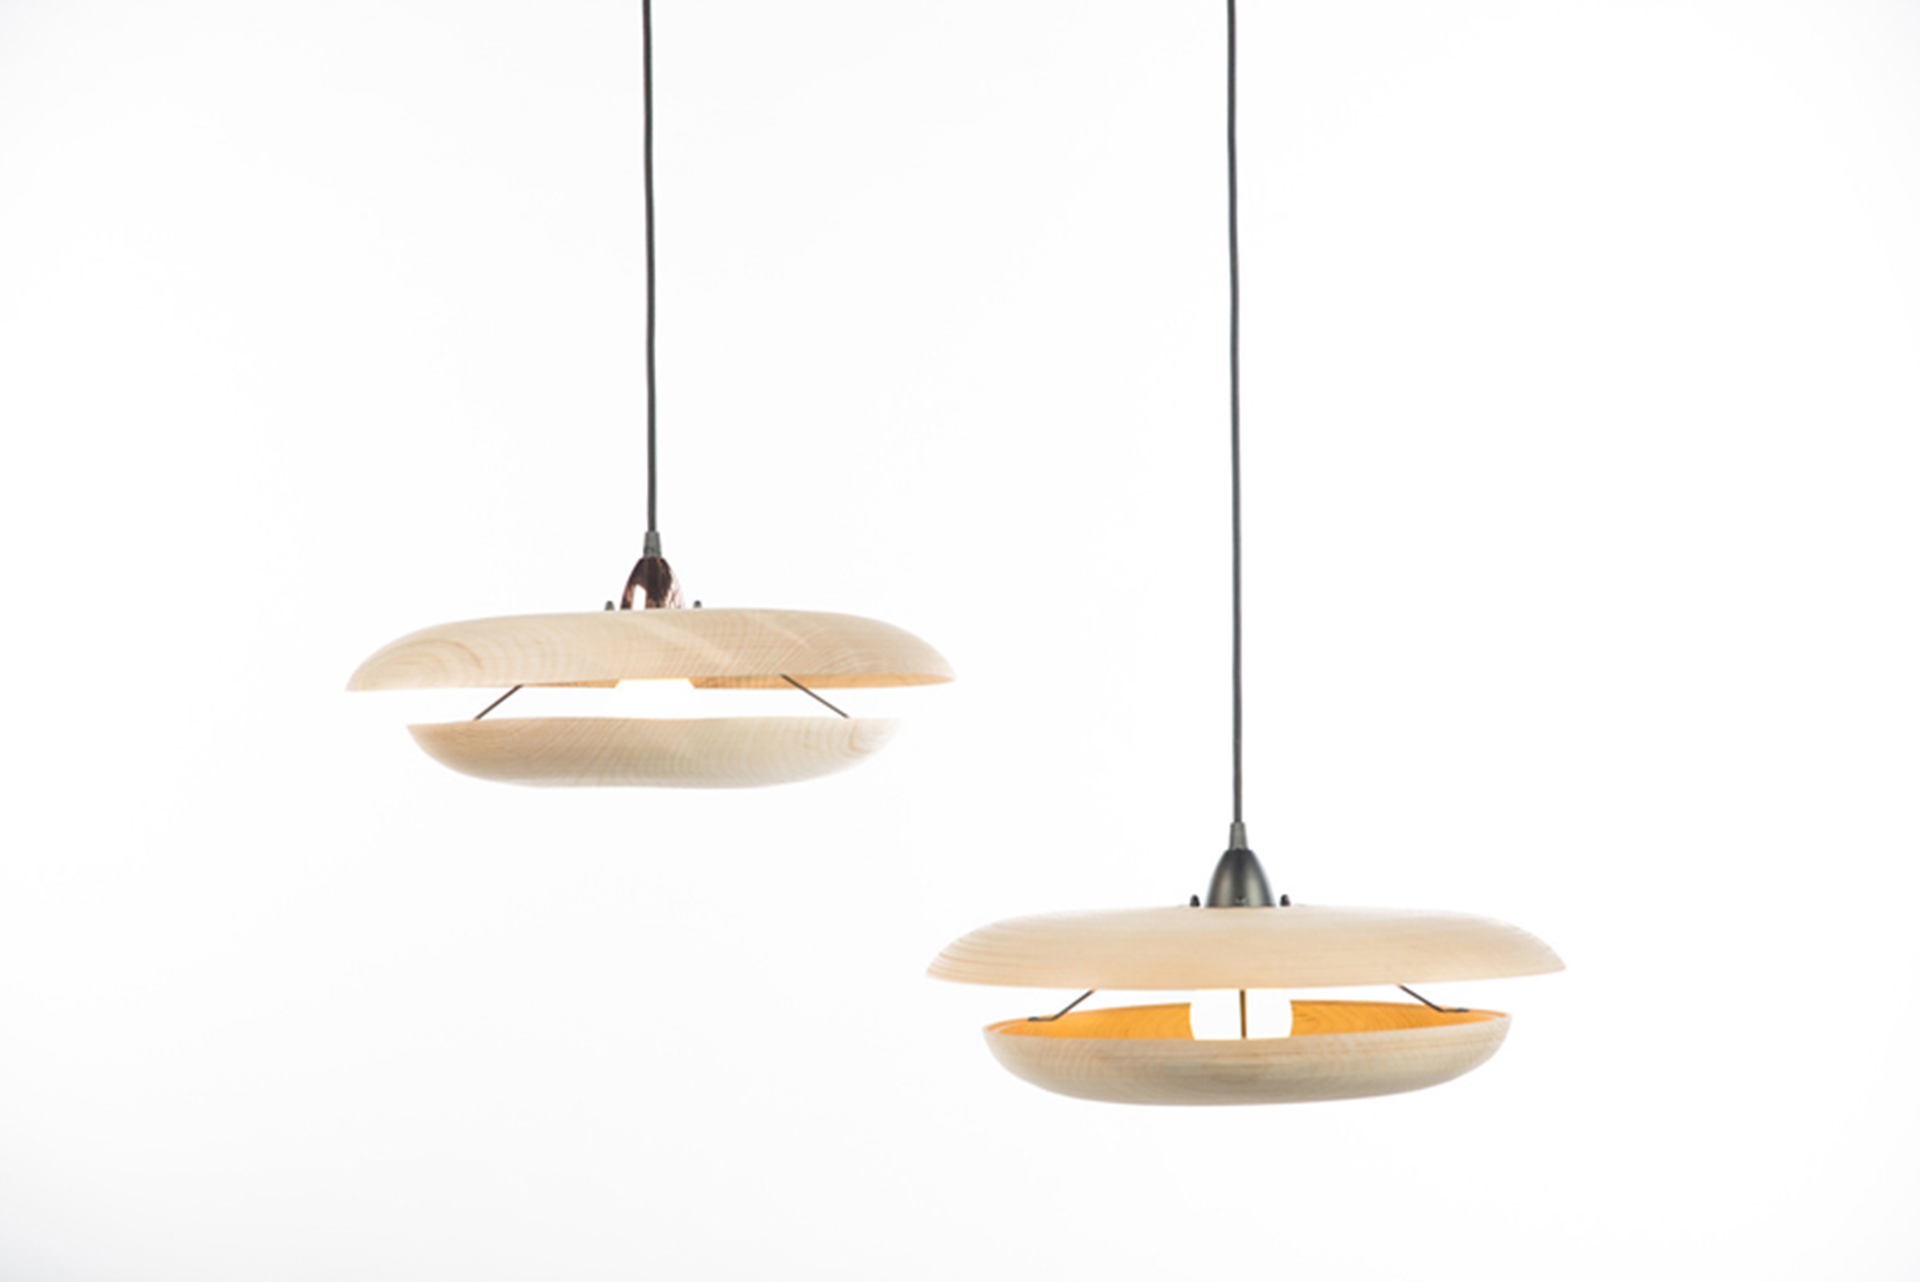 Boex pendant lights side on view